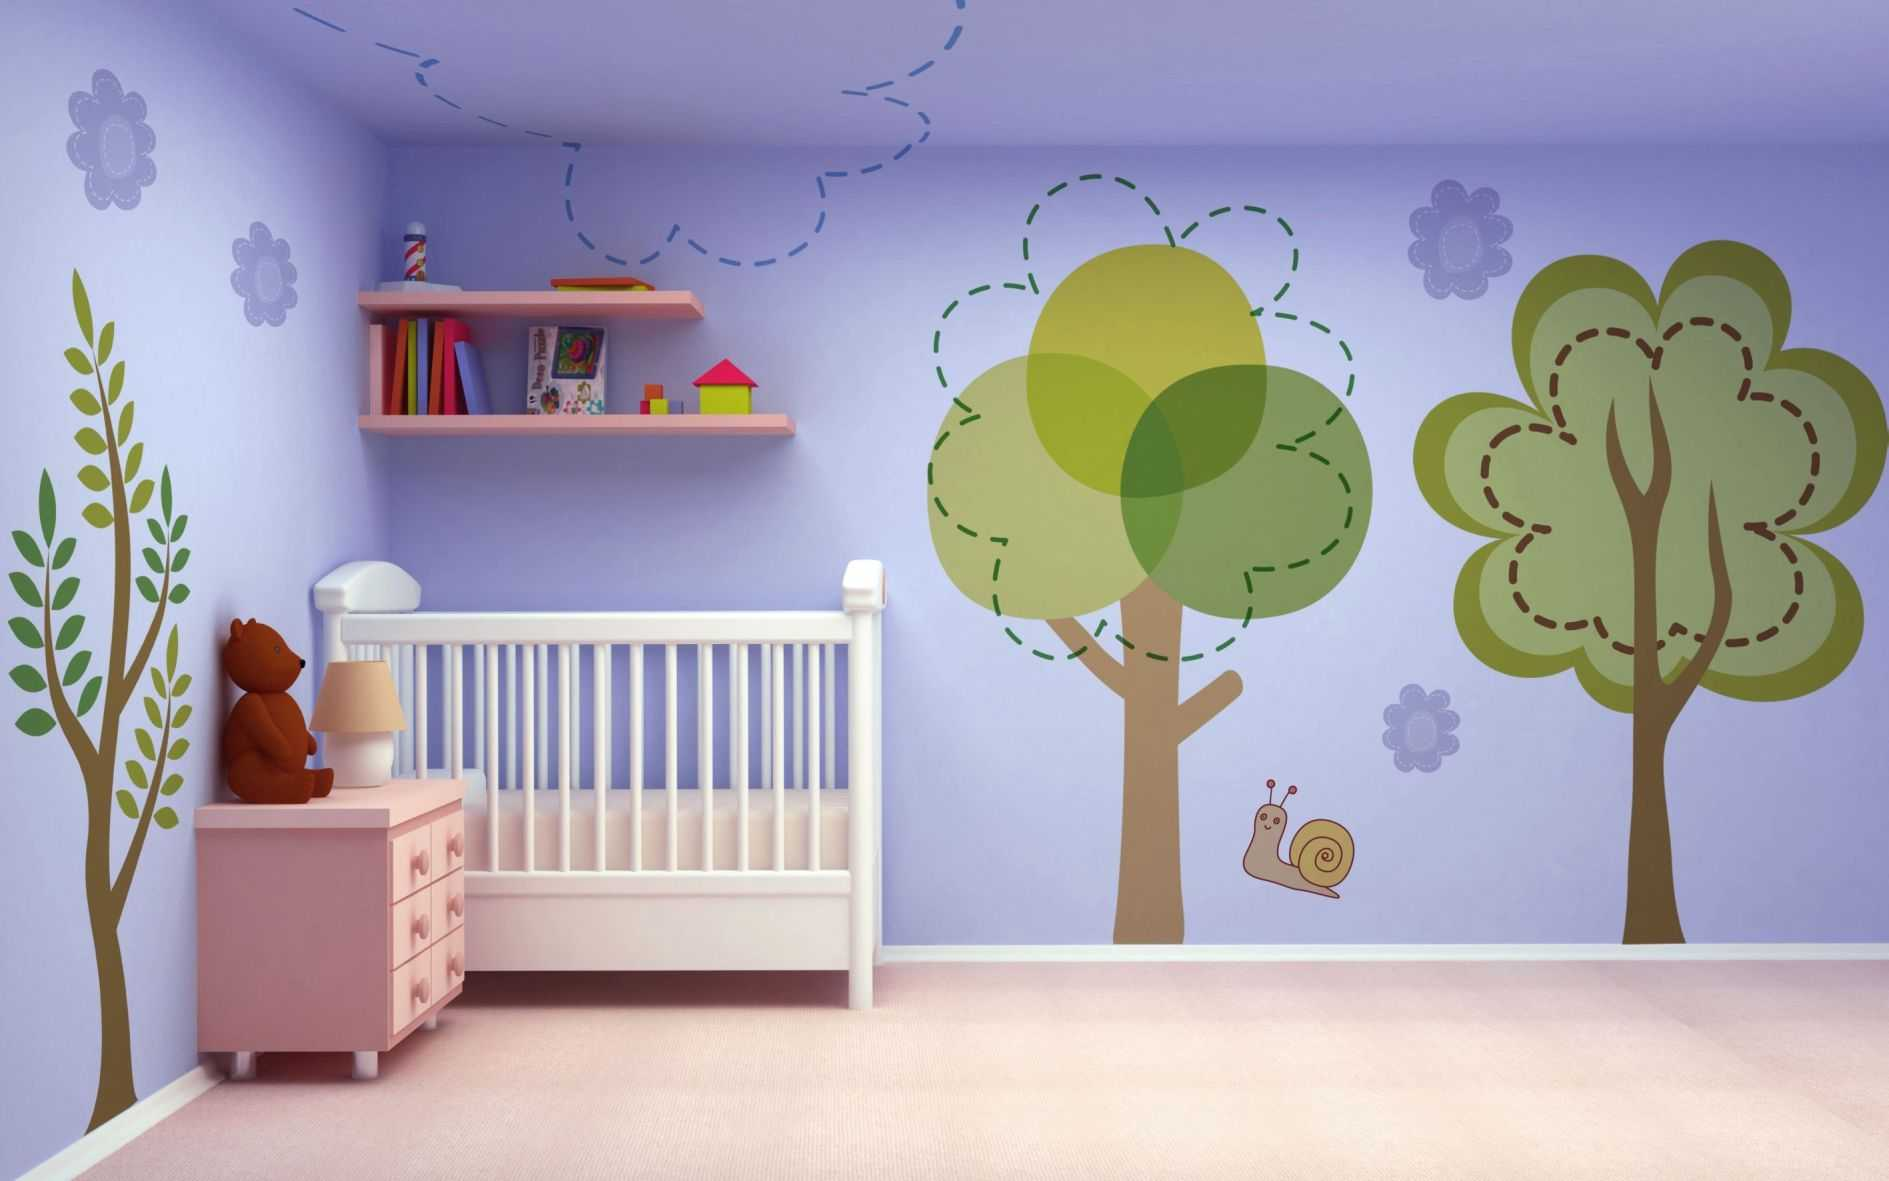 Decorazione Pareti Per Bambini : Decorare pareti camera. interesting idee per decorare pareti